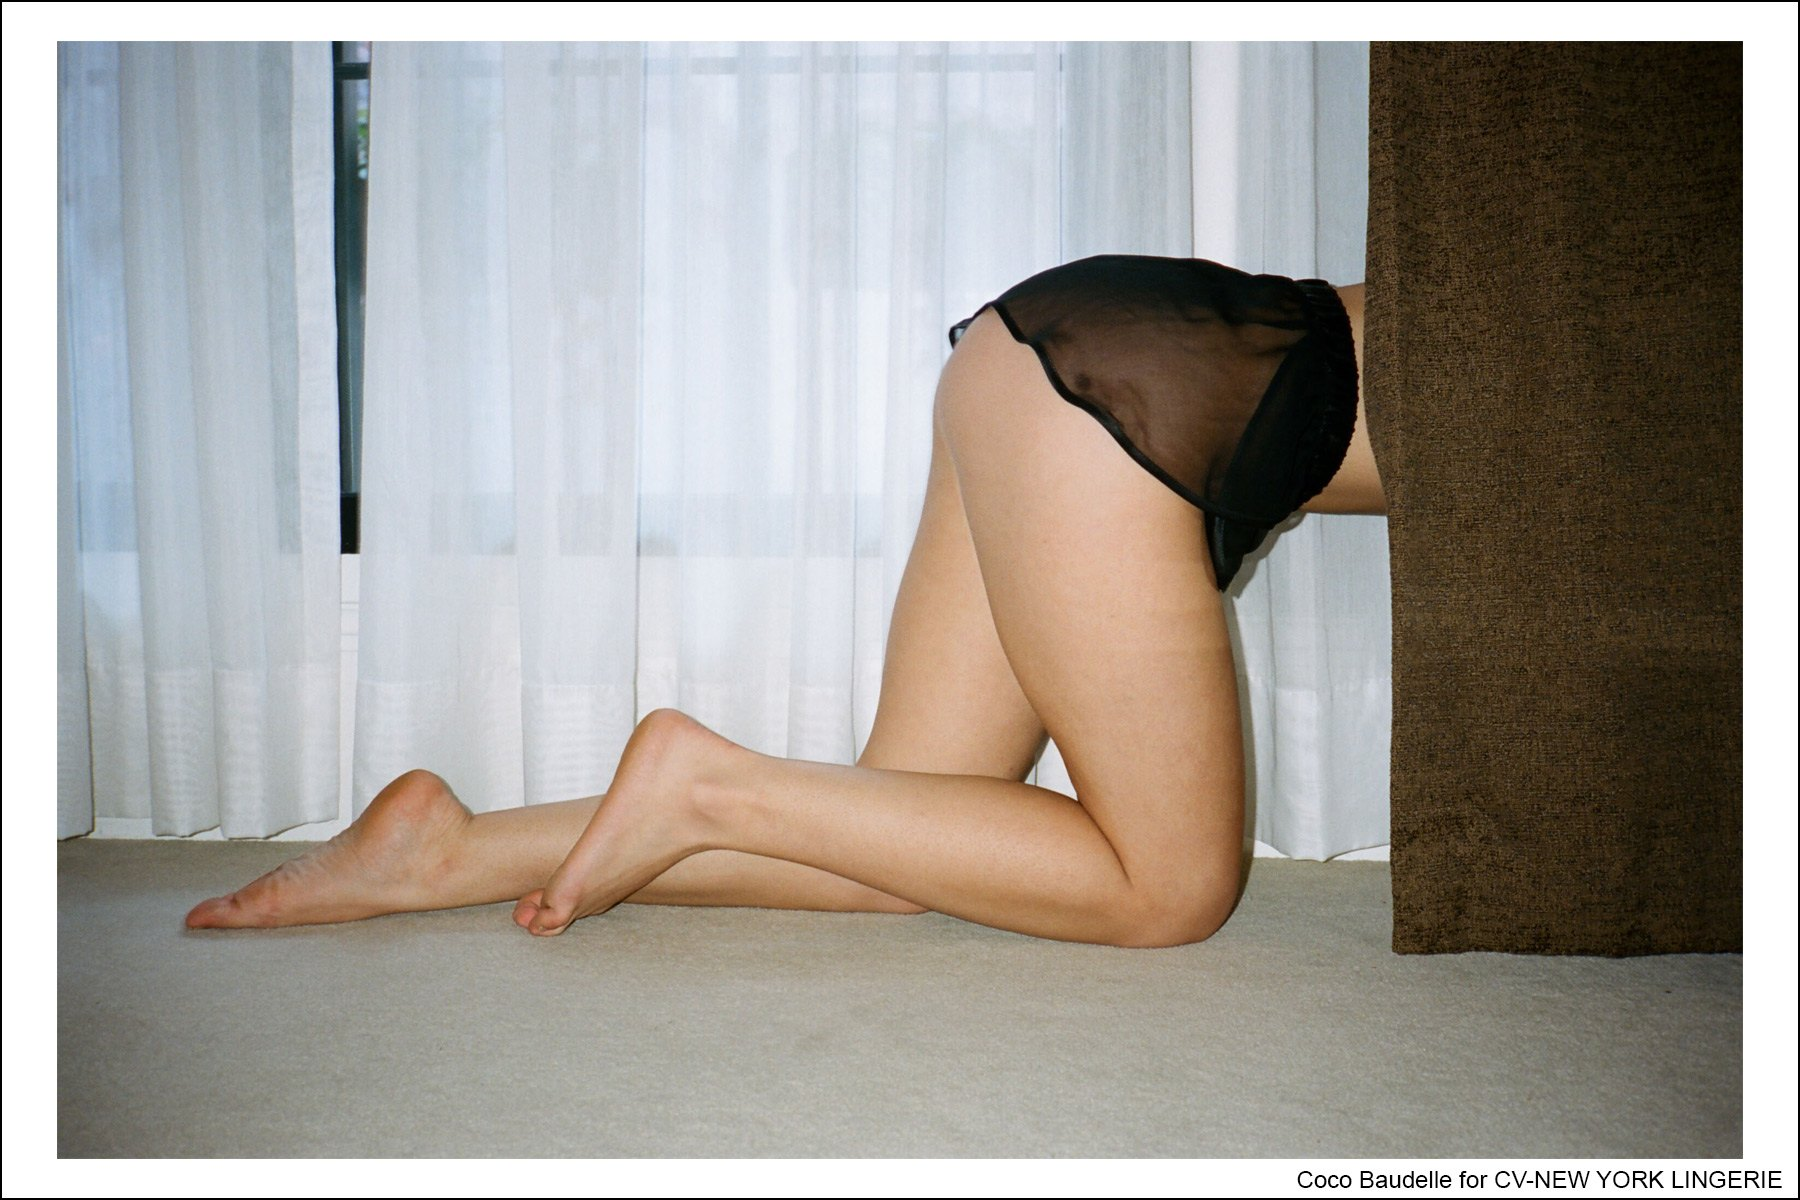 Coco Baudelle, photographed by Kristin Gallegos for CV-New York Lingerie. Ponyboy magazine NY.